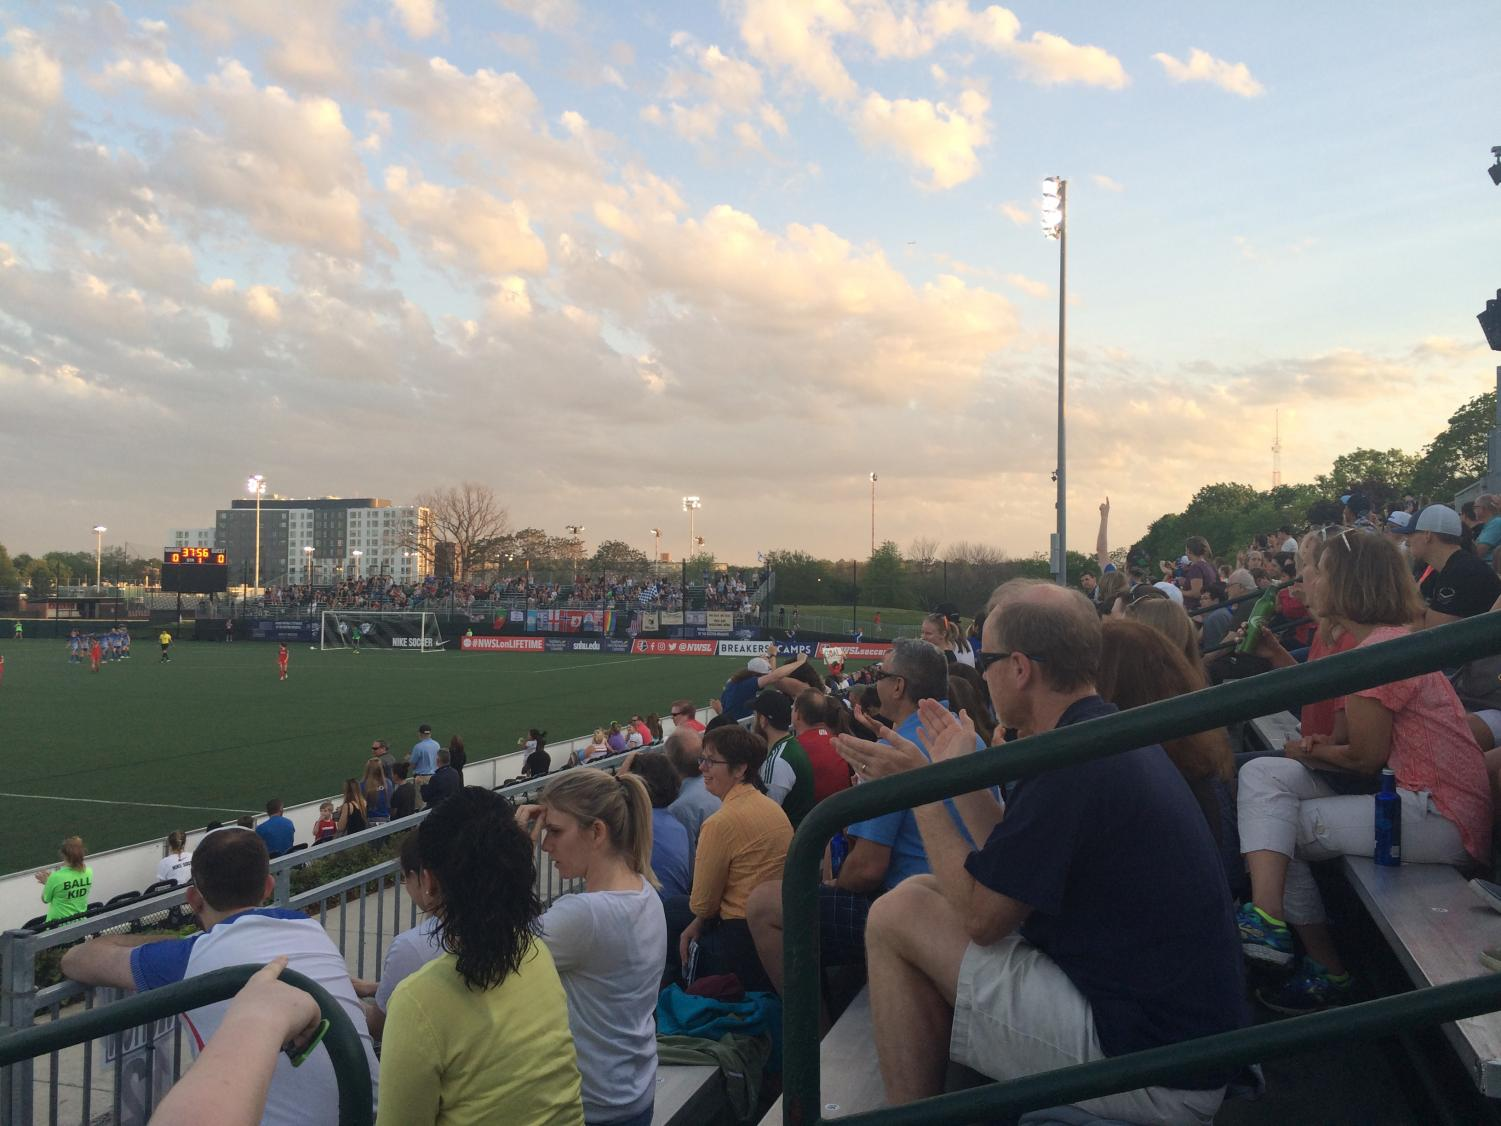 Pictured: A Boston Breakers game at Jordan Field outside the Harvard Stadium.